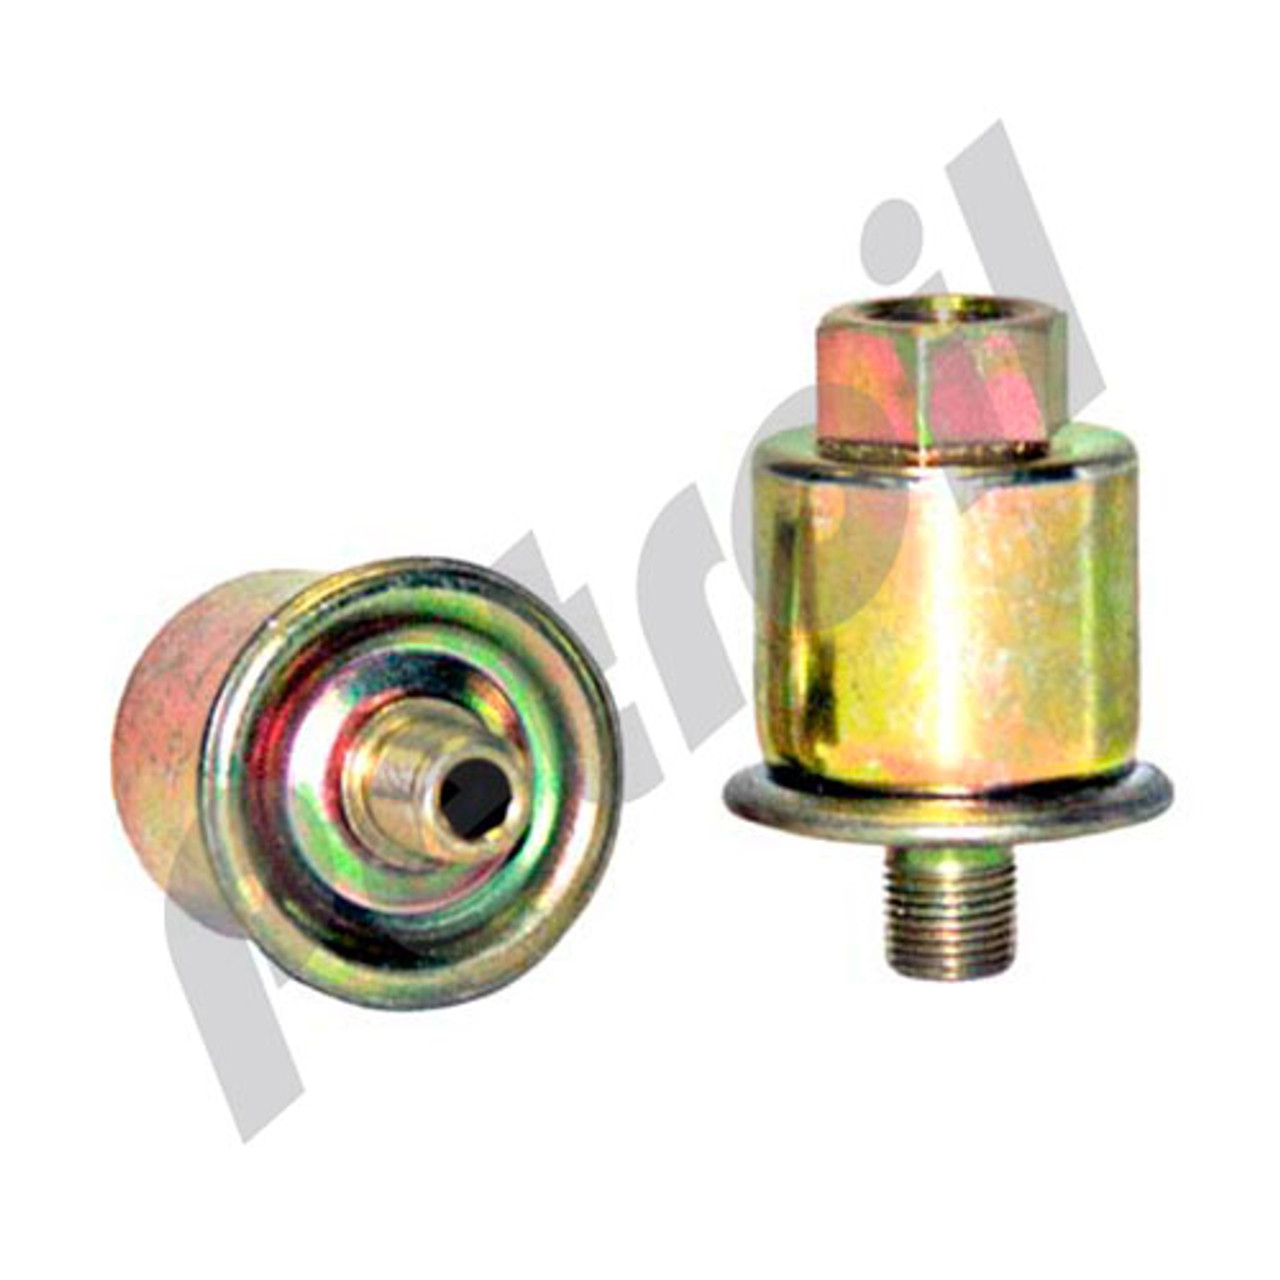 Wix Fuel Filter New Holland Maquinery Model L40 Skid Steer ...